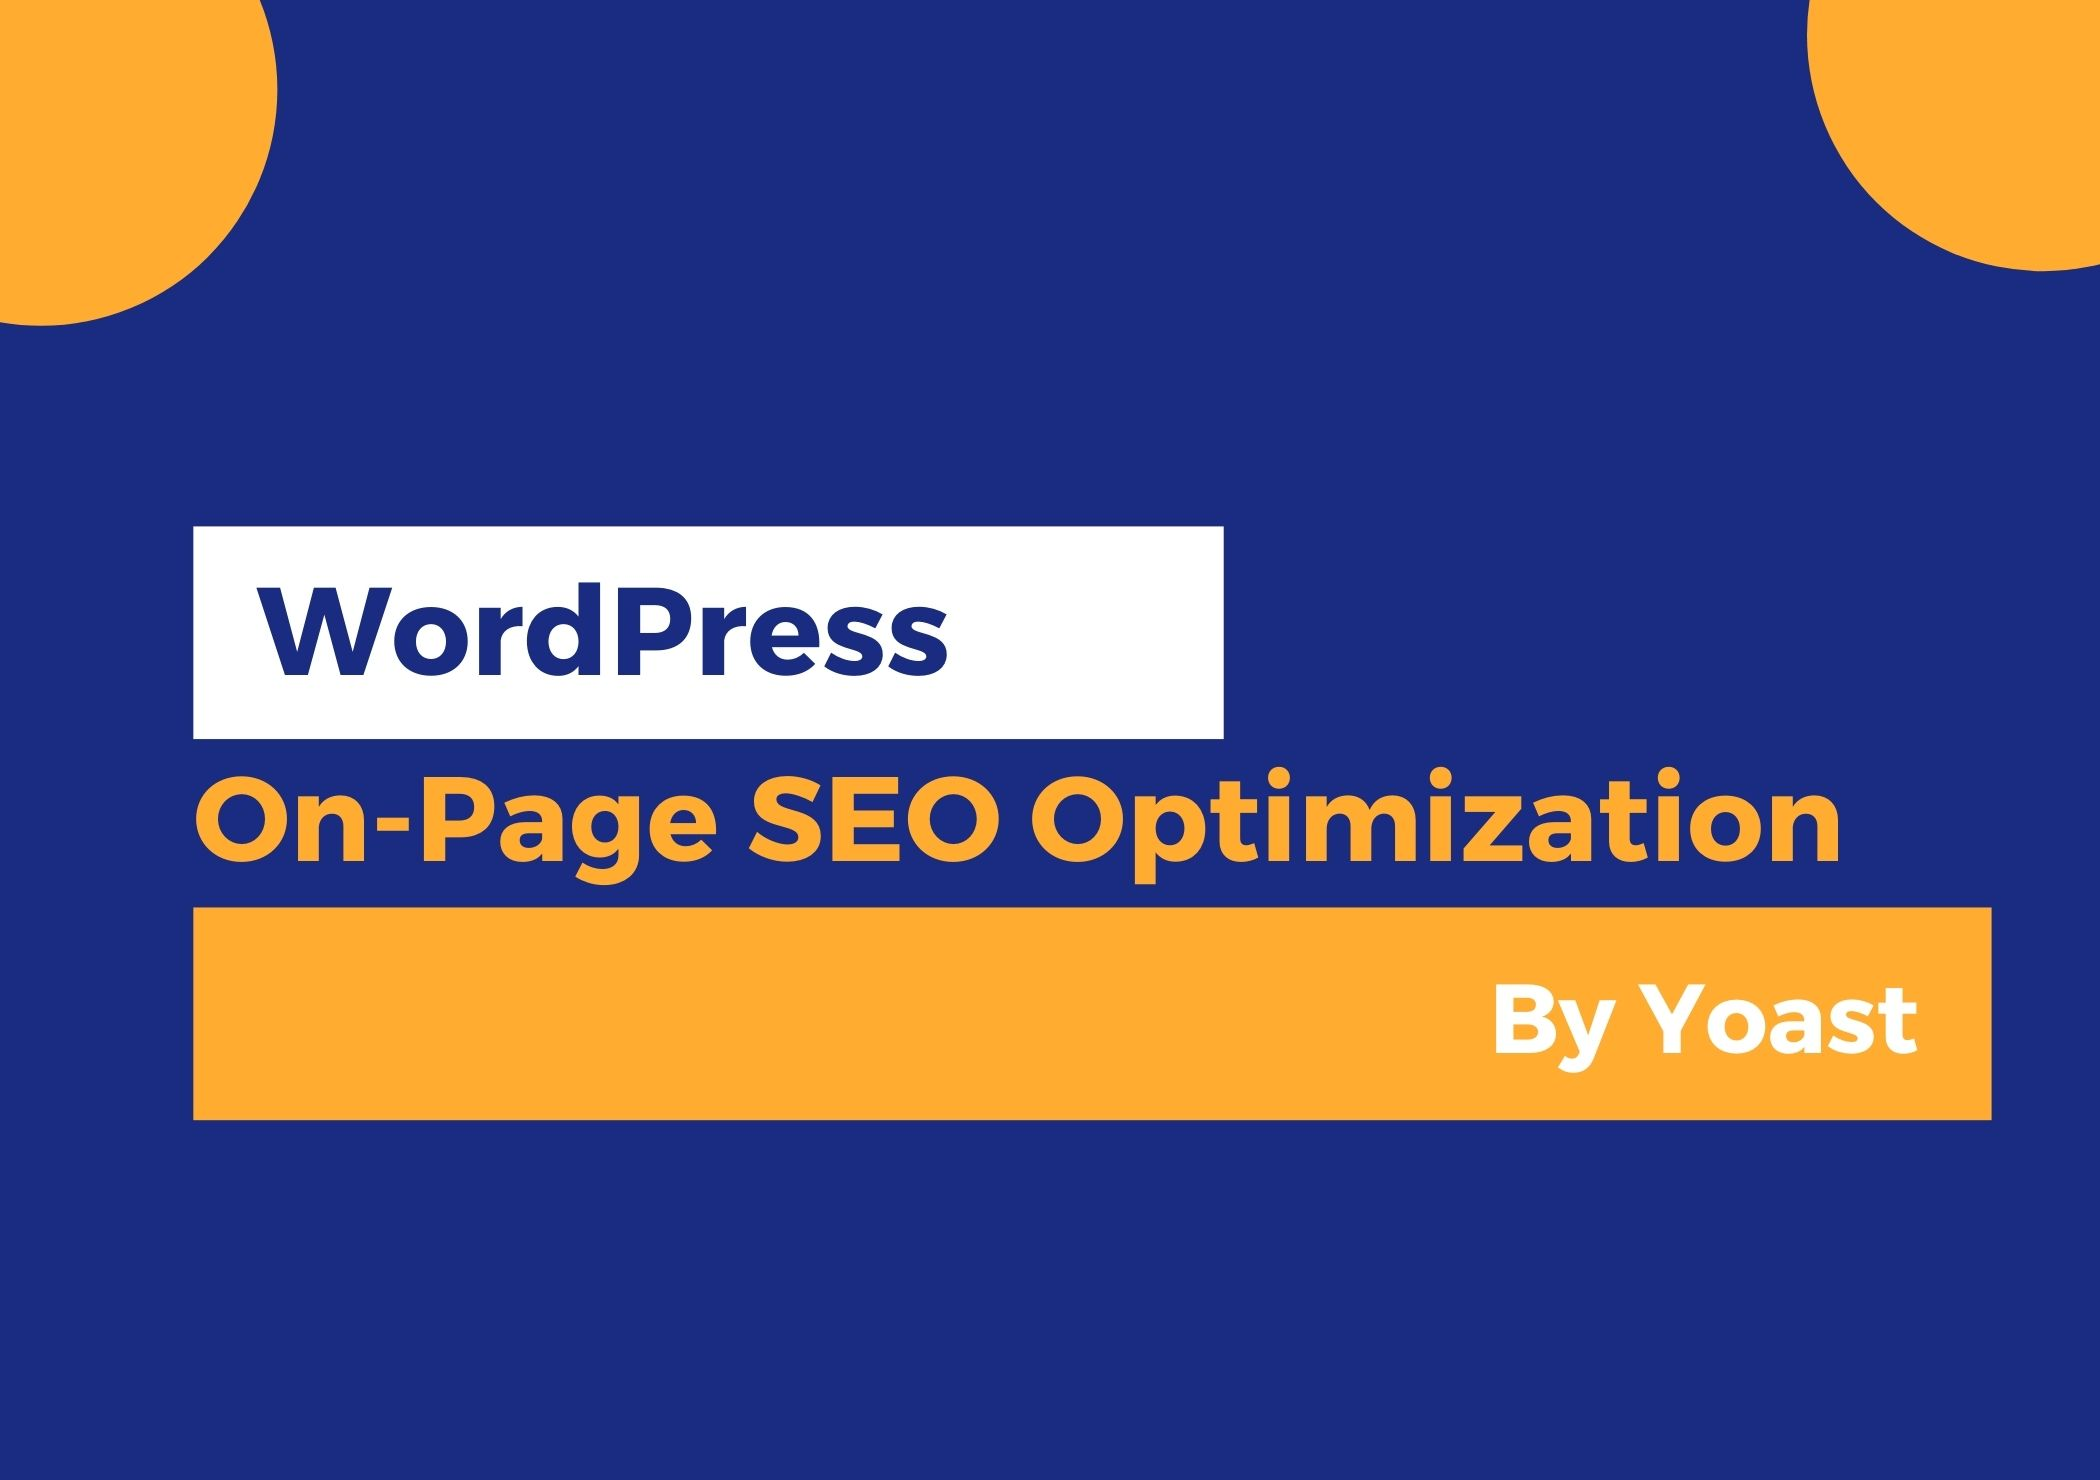 I will do WordPress Onpage SEO Optimization By Yoast